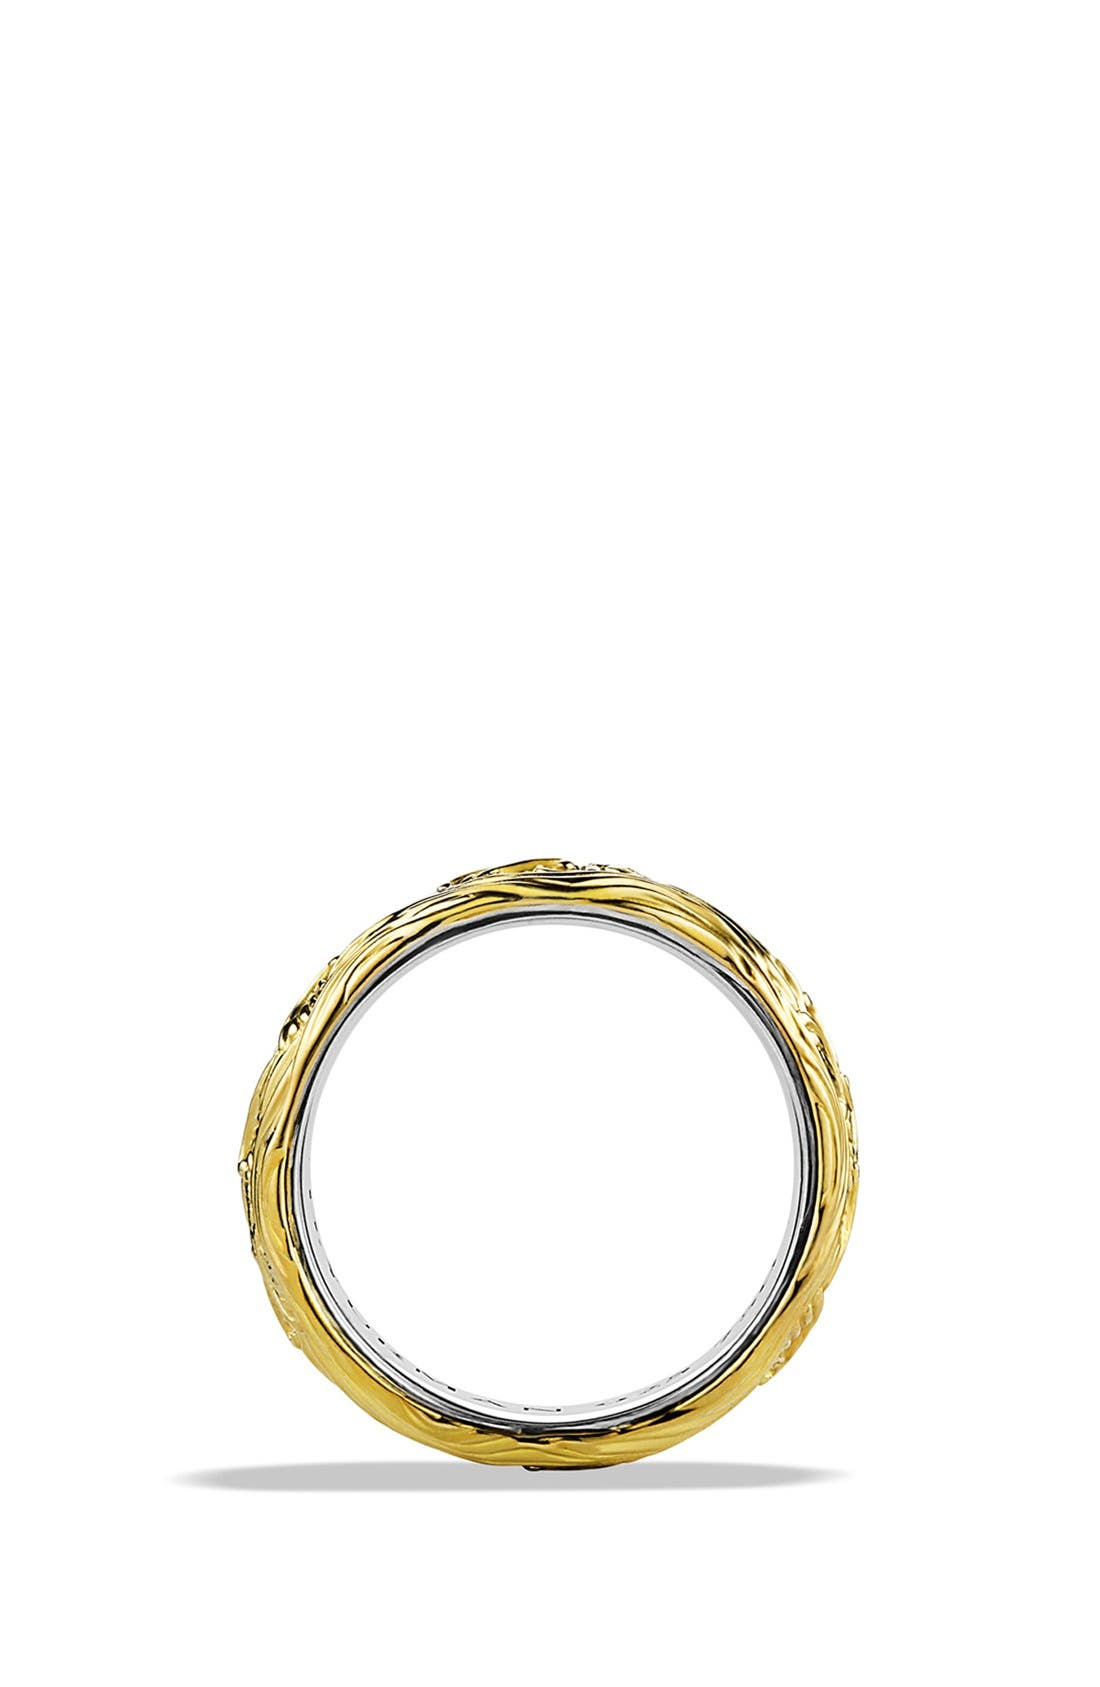 'Waves' Band Ring with Gold,                             Alternate thumbnail 3, color,                             TWO TONE